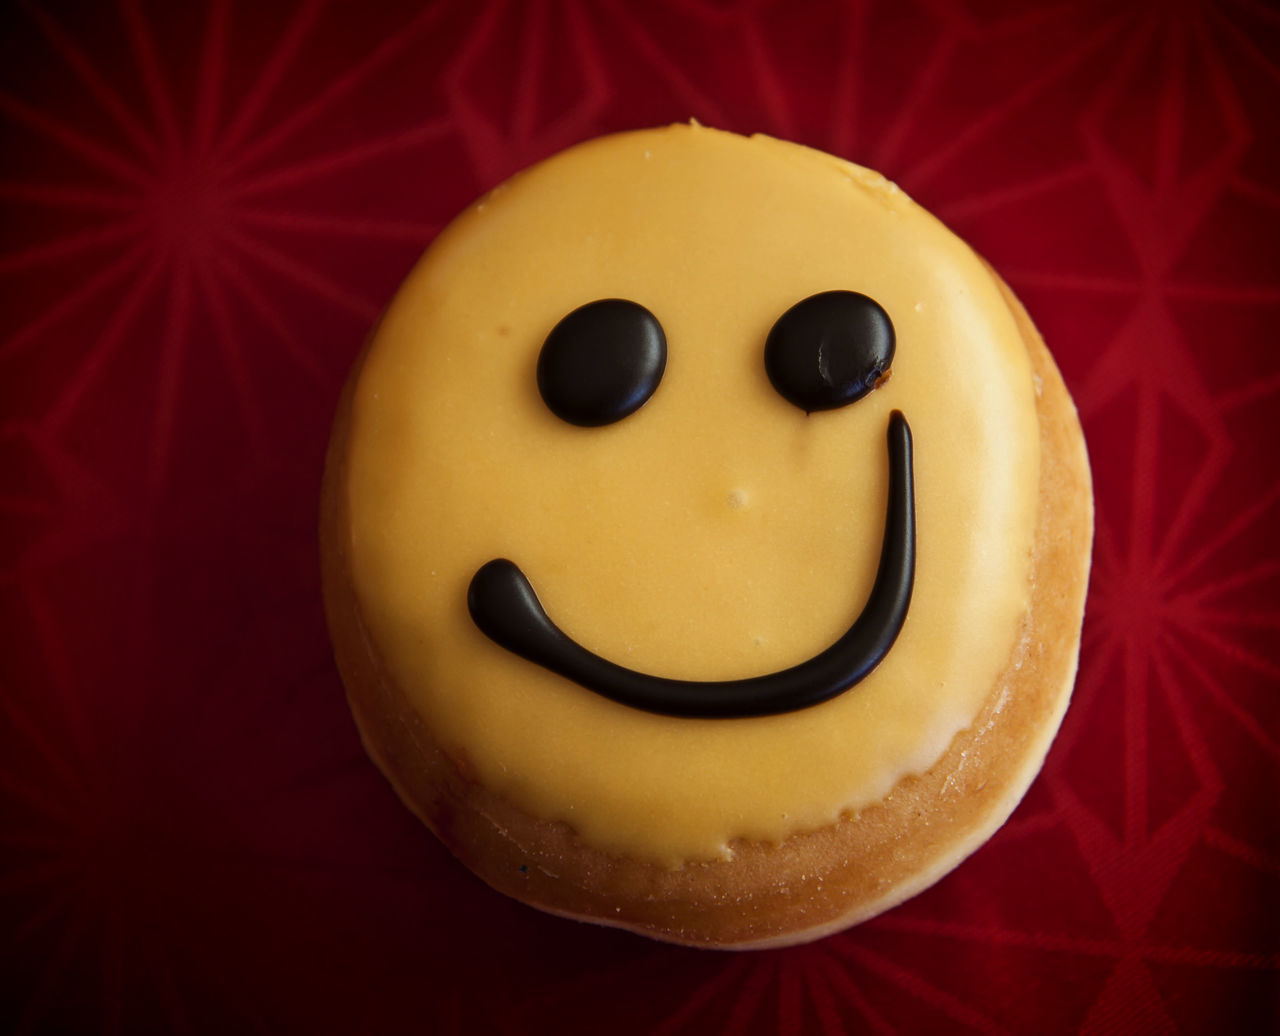 Smiley doughnut with lemon cream icing and chocolate Backen Baker Cake Calories Chocolate Dessert Donut Dough Doughnut Fried Glaze Icin Pastry Round Sugar Sweet Tasty Topping Treat Yellow